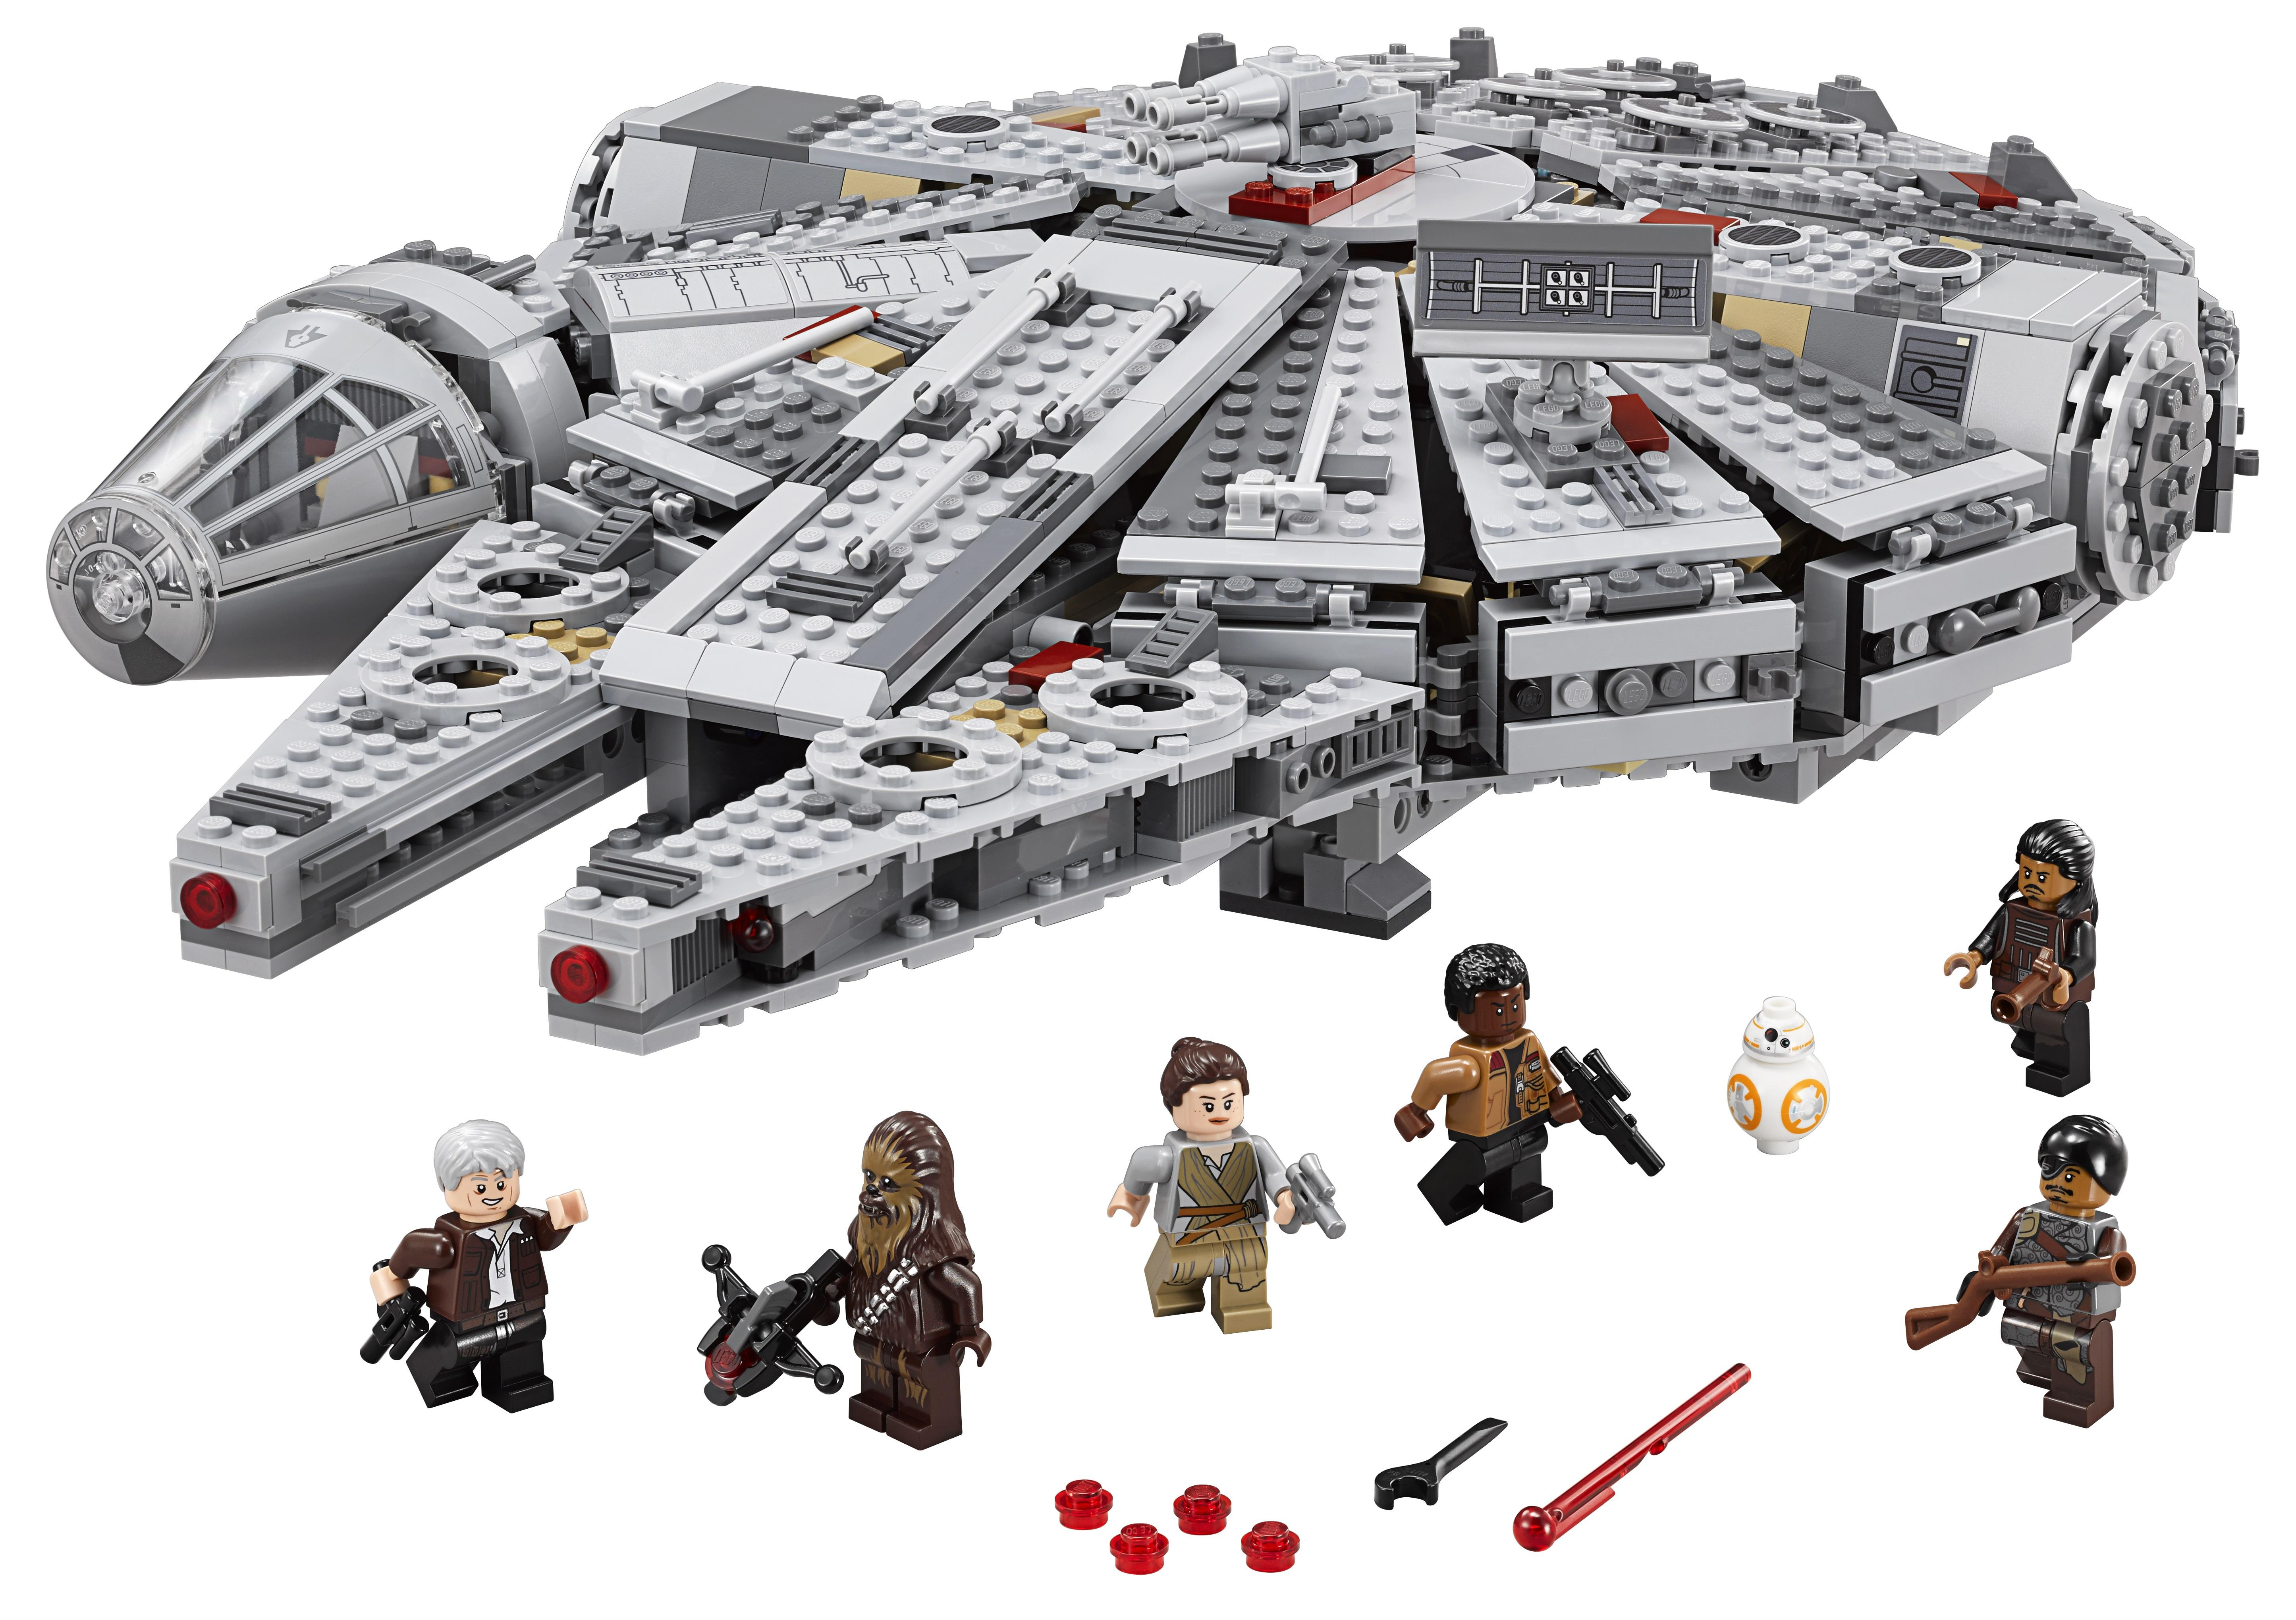 The Force Awakens Millennium Falcon - 2015